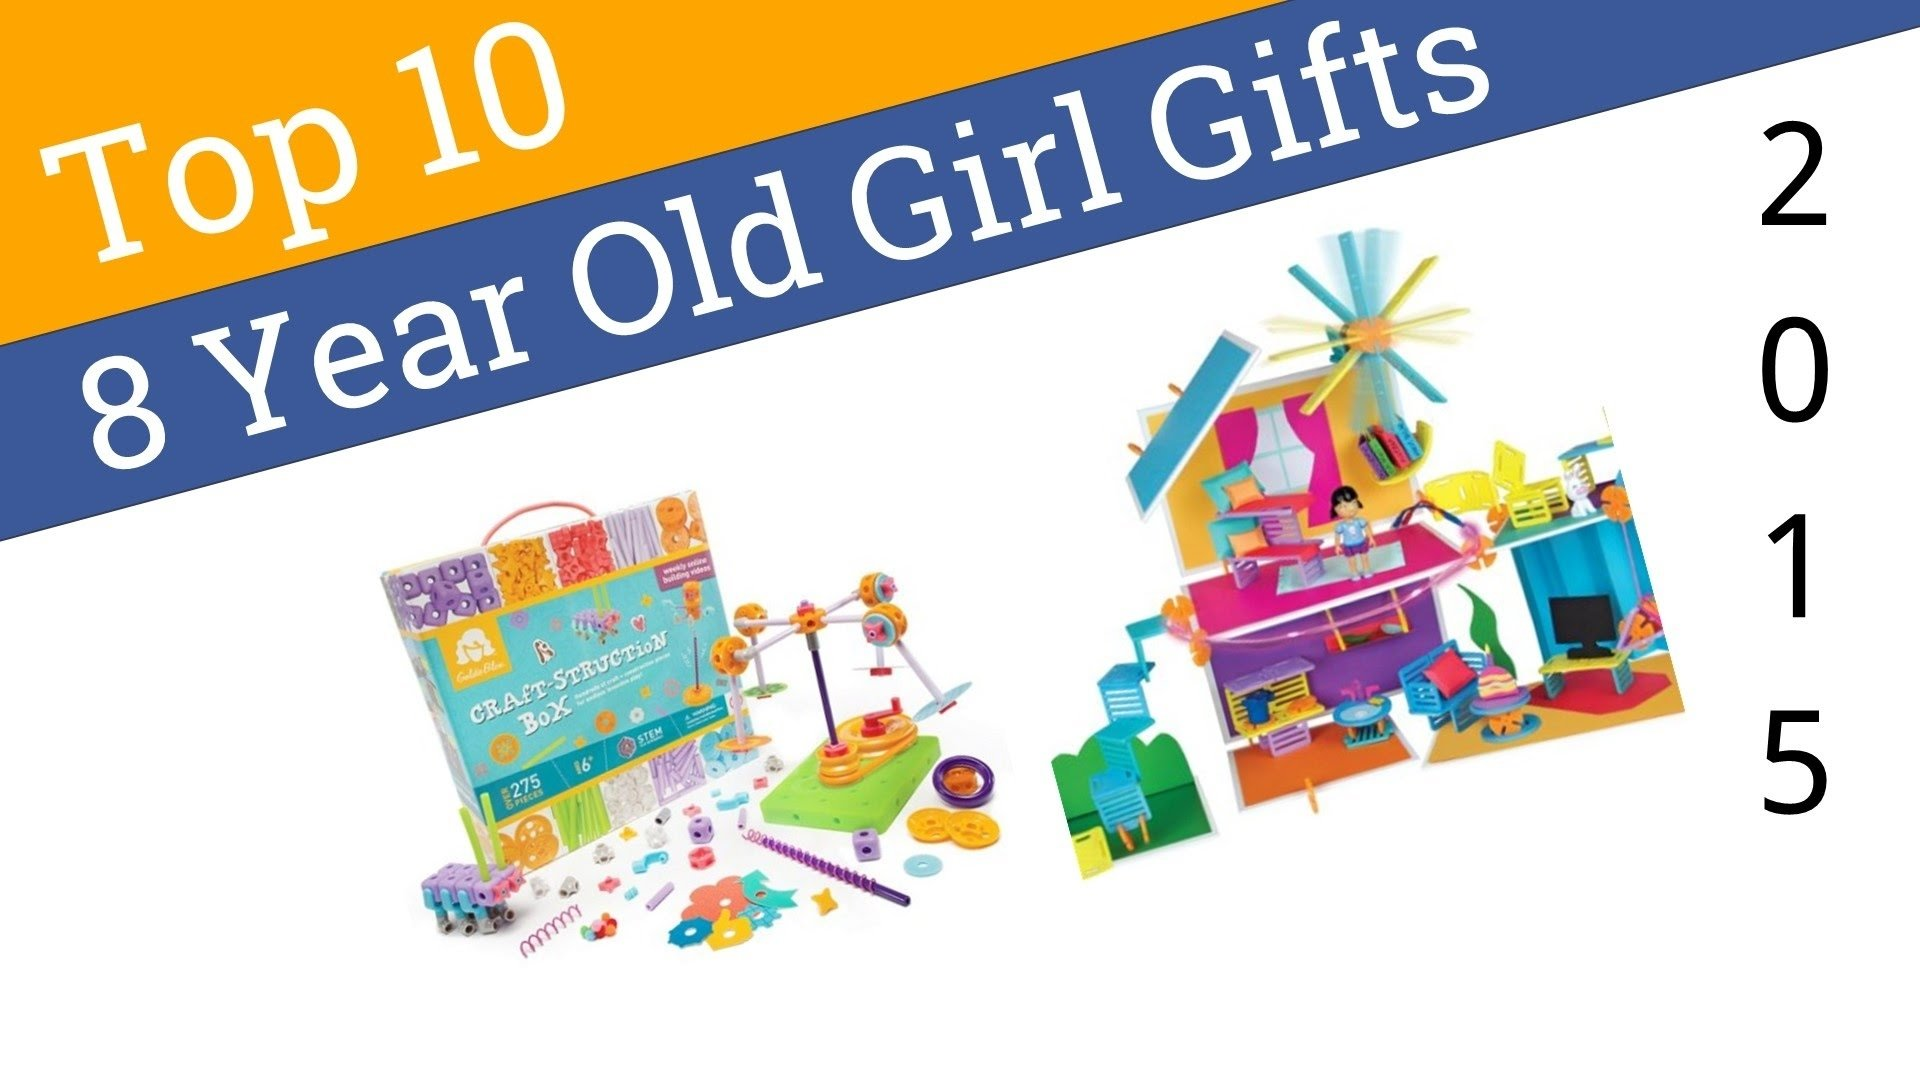 10 Wonderful Gift Ideas For 8 Year Old Girls 10 best 8 year old girl gifts 2015 youtube 2 2021